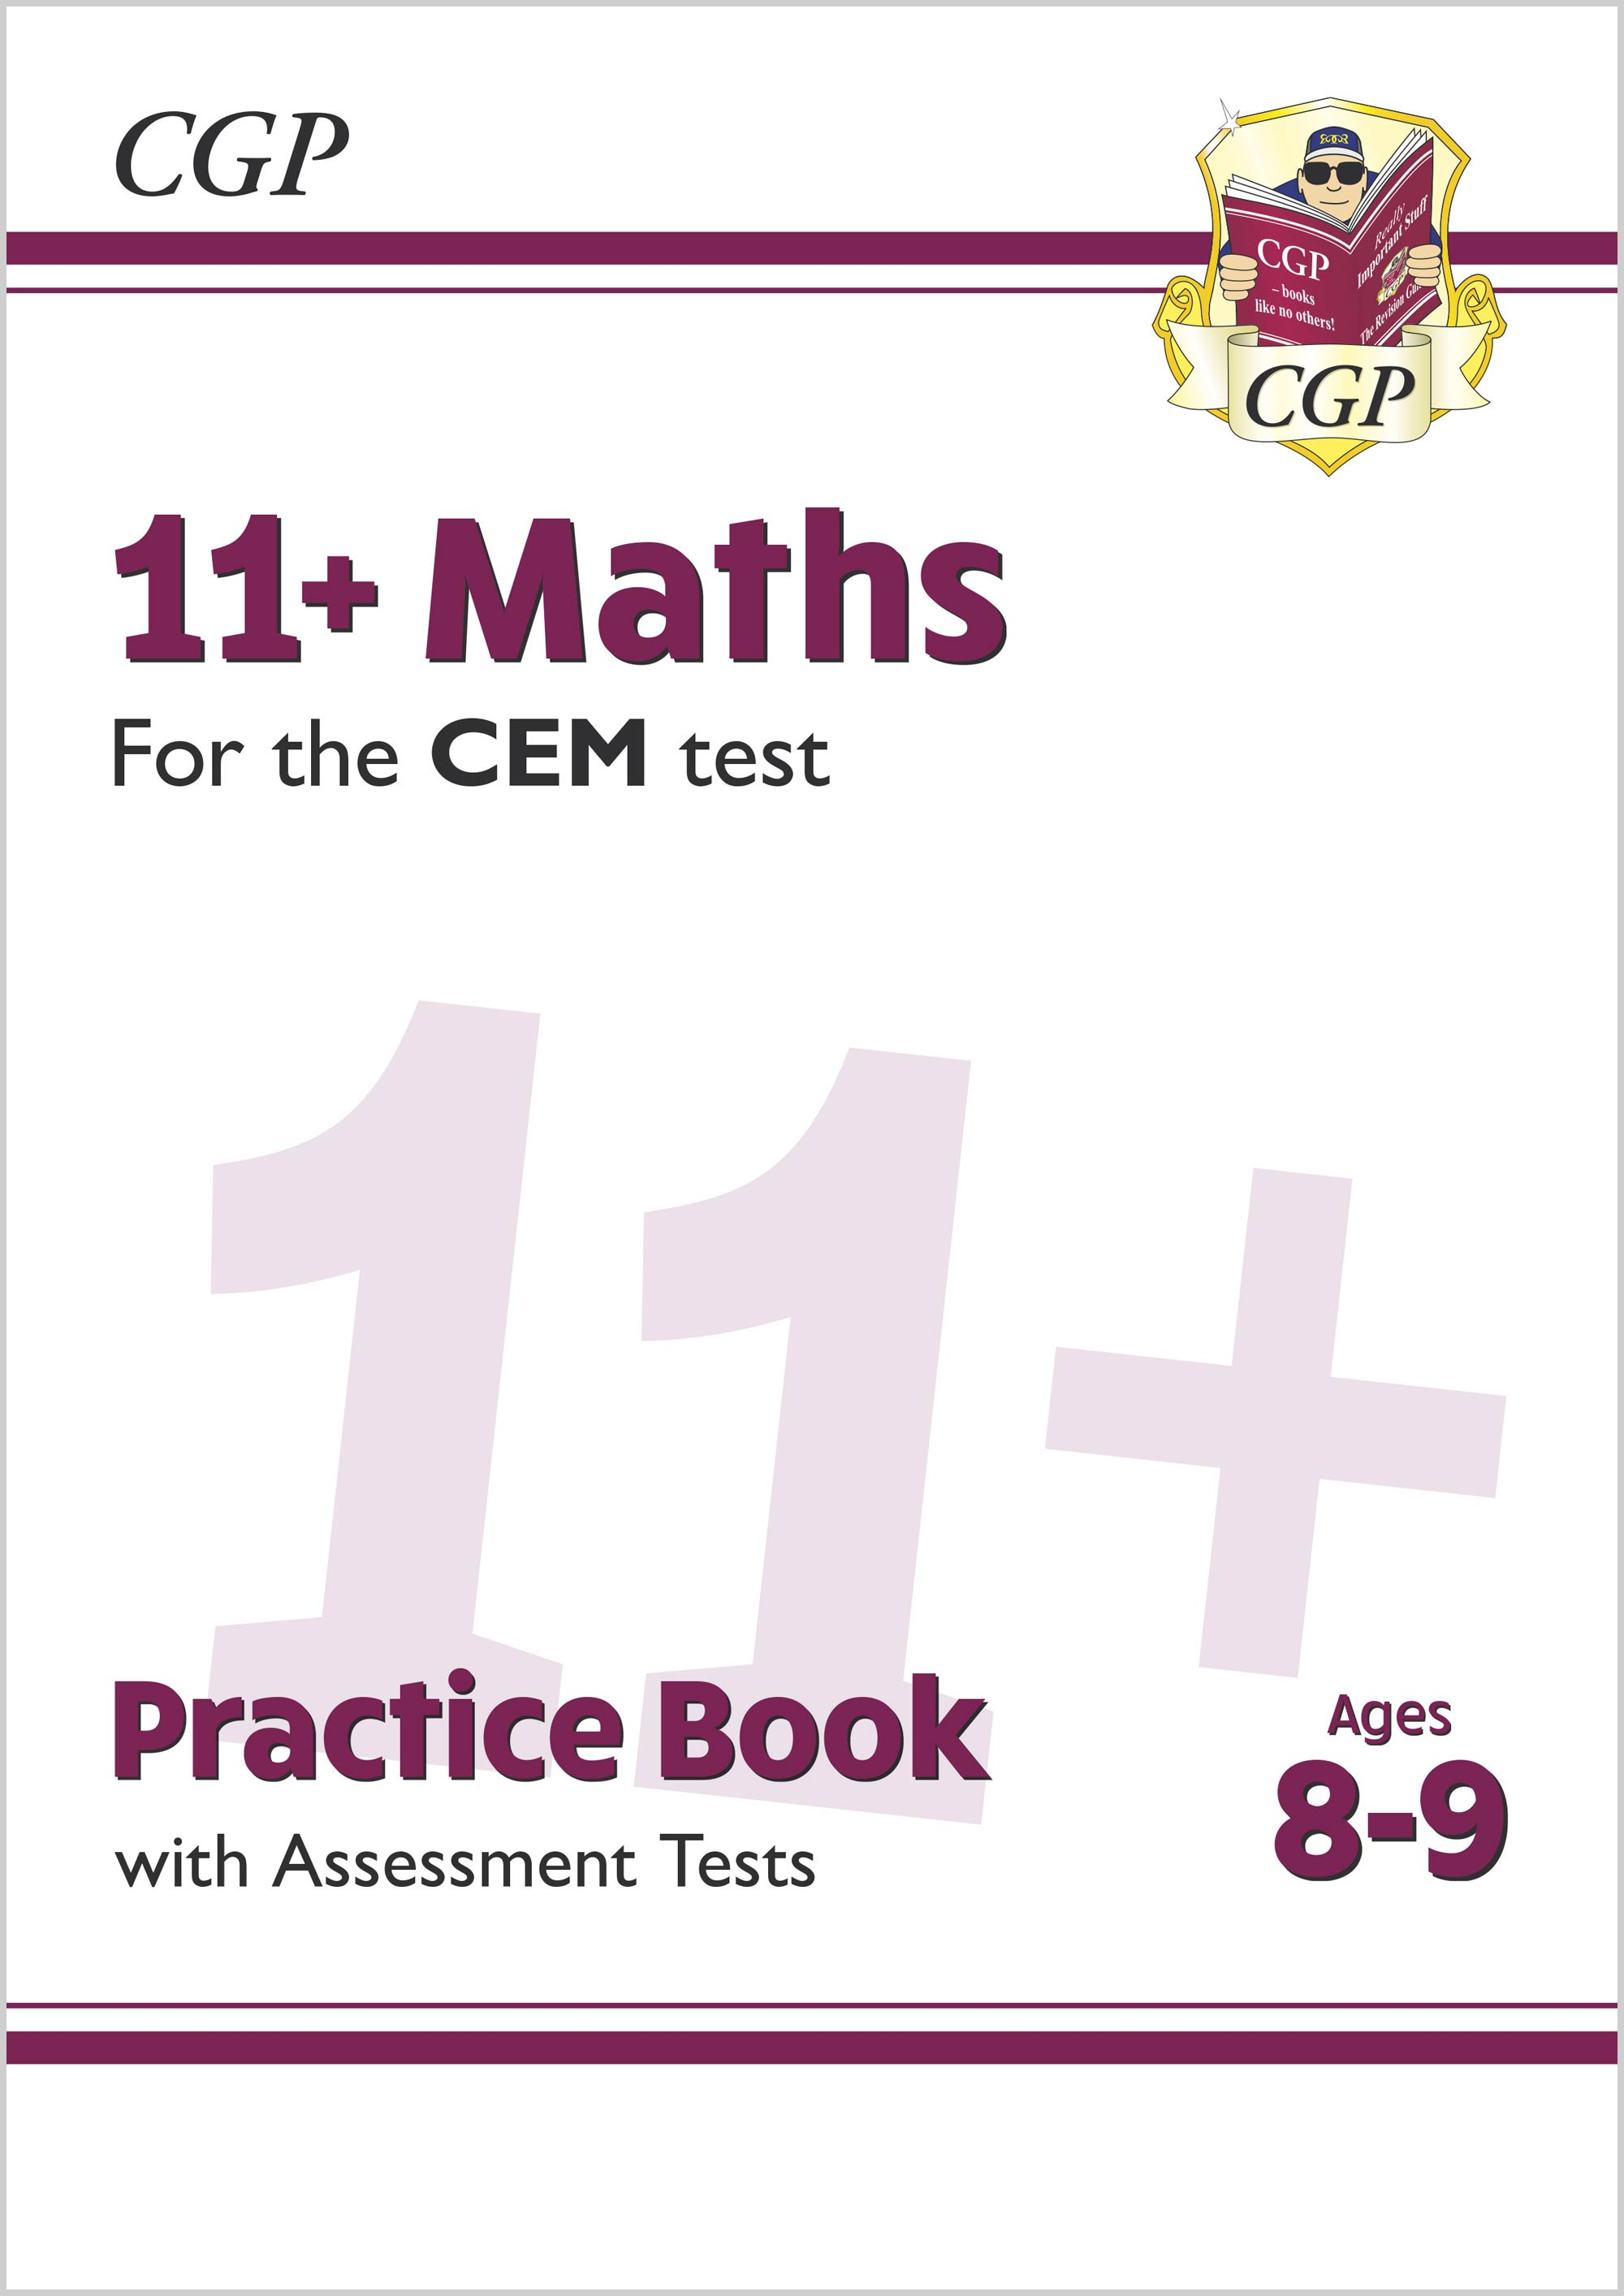 M4QDE2DK - New 11+ CEM Maths Practice Book & Assessment Tests - Ages 8-9 (with Online Edition)